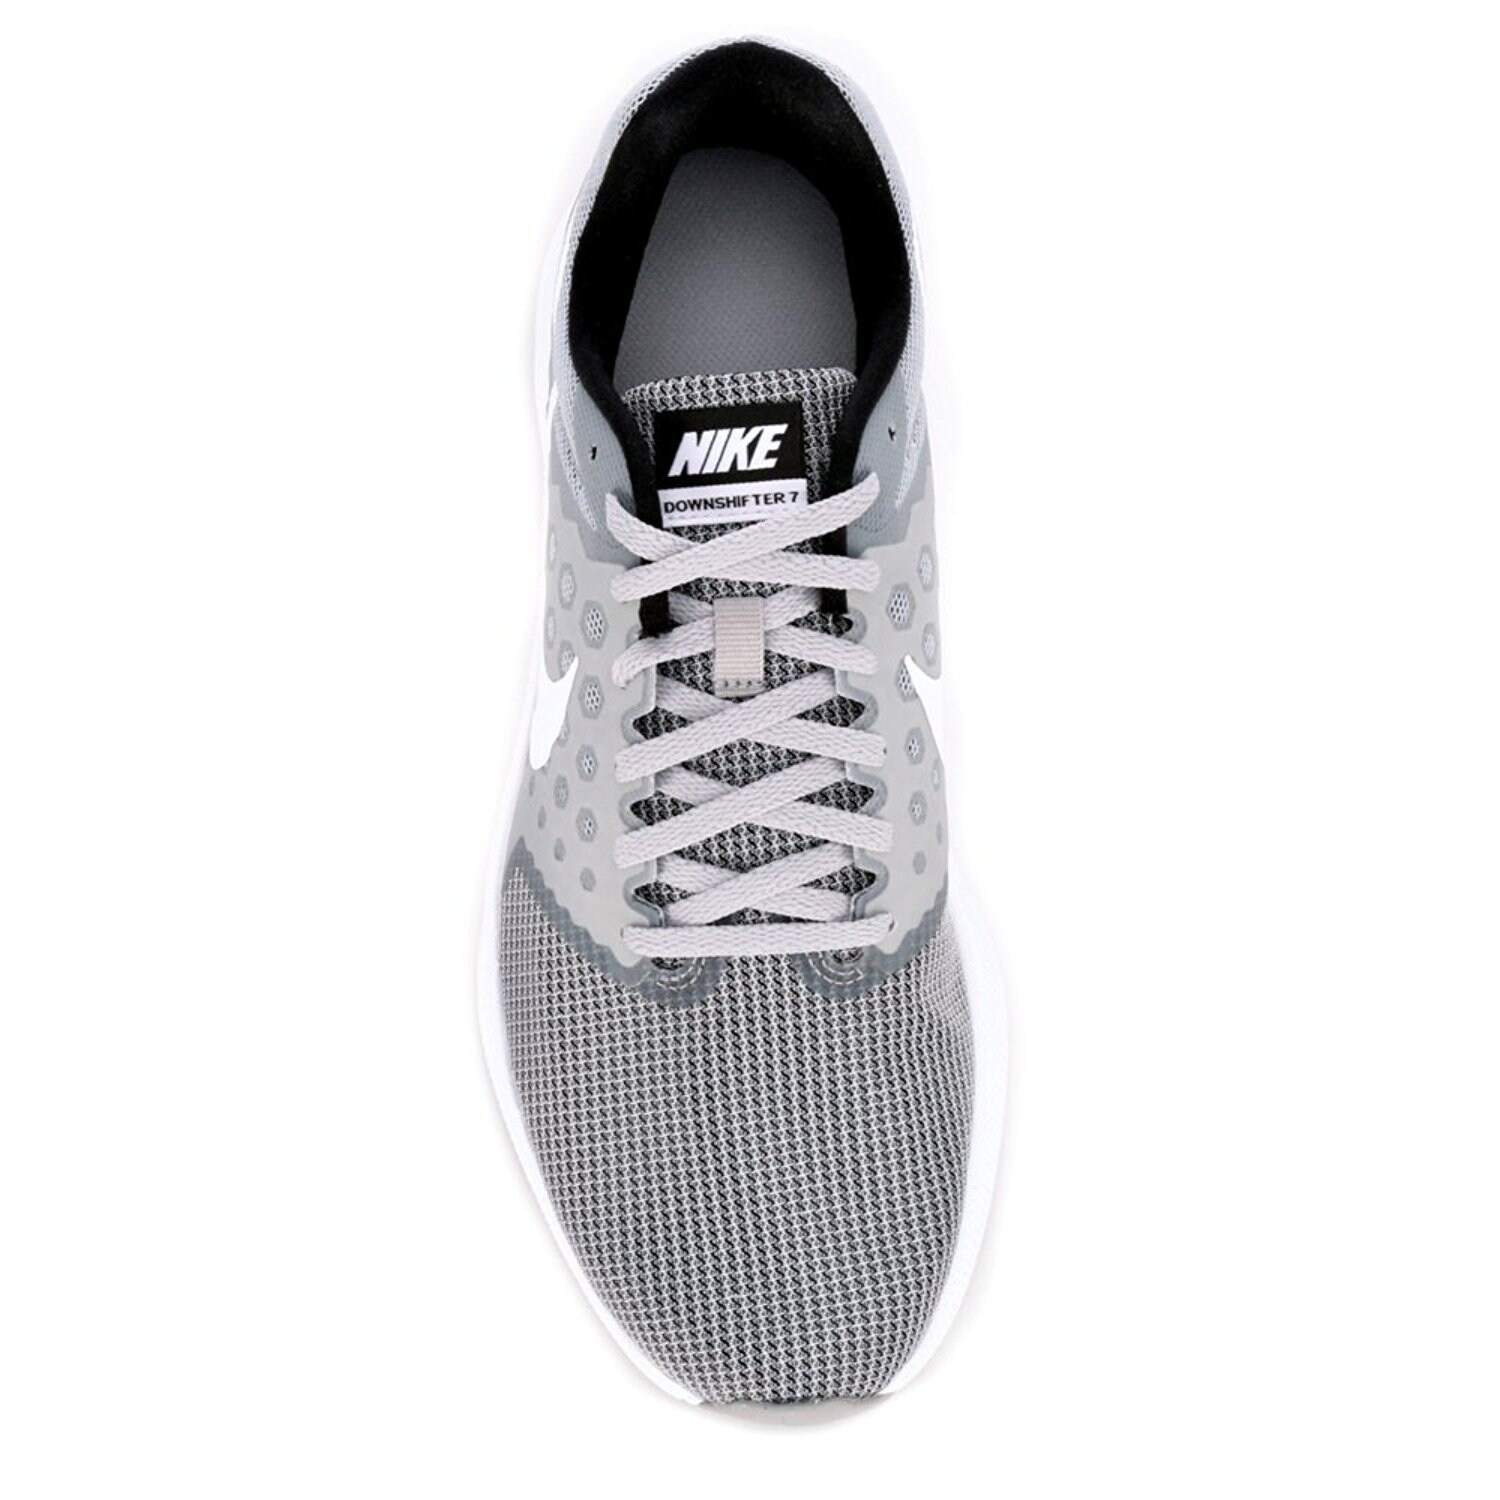 64f189501504f Shop Men s Nike Downshifter 7 Running Shoe Wolf Grey White Black - Free  Shipping Today - Overstock - 17941680